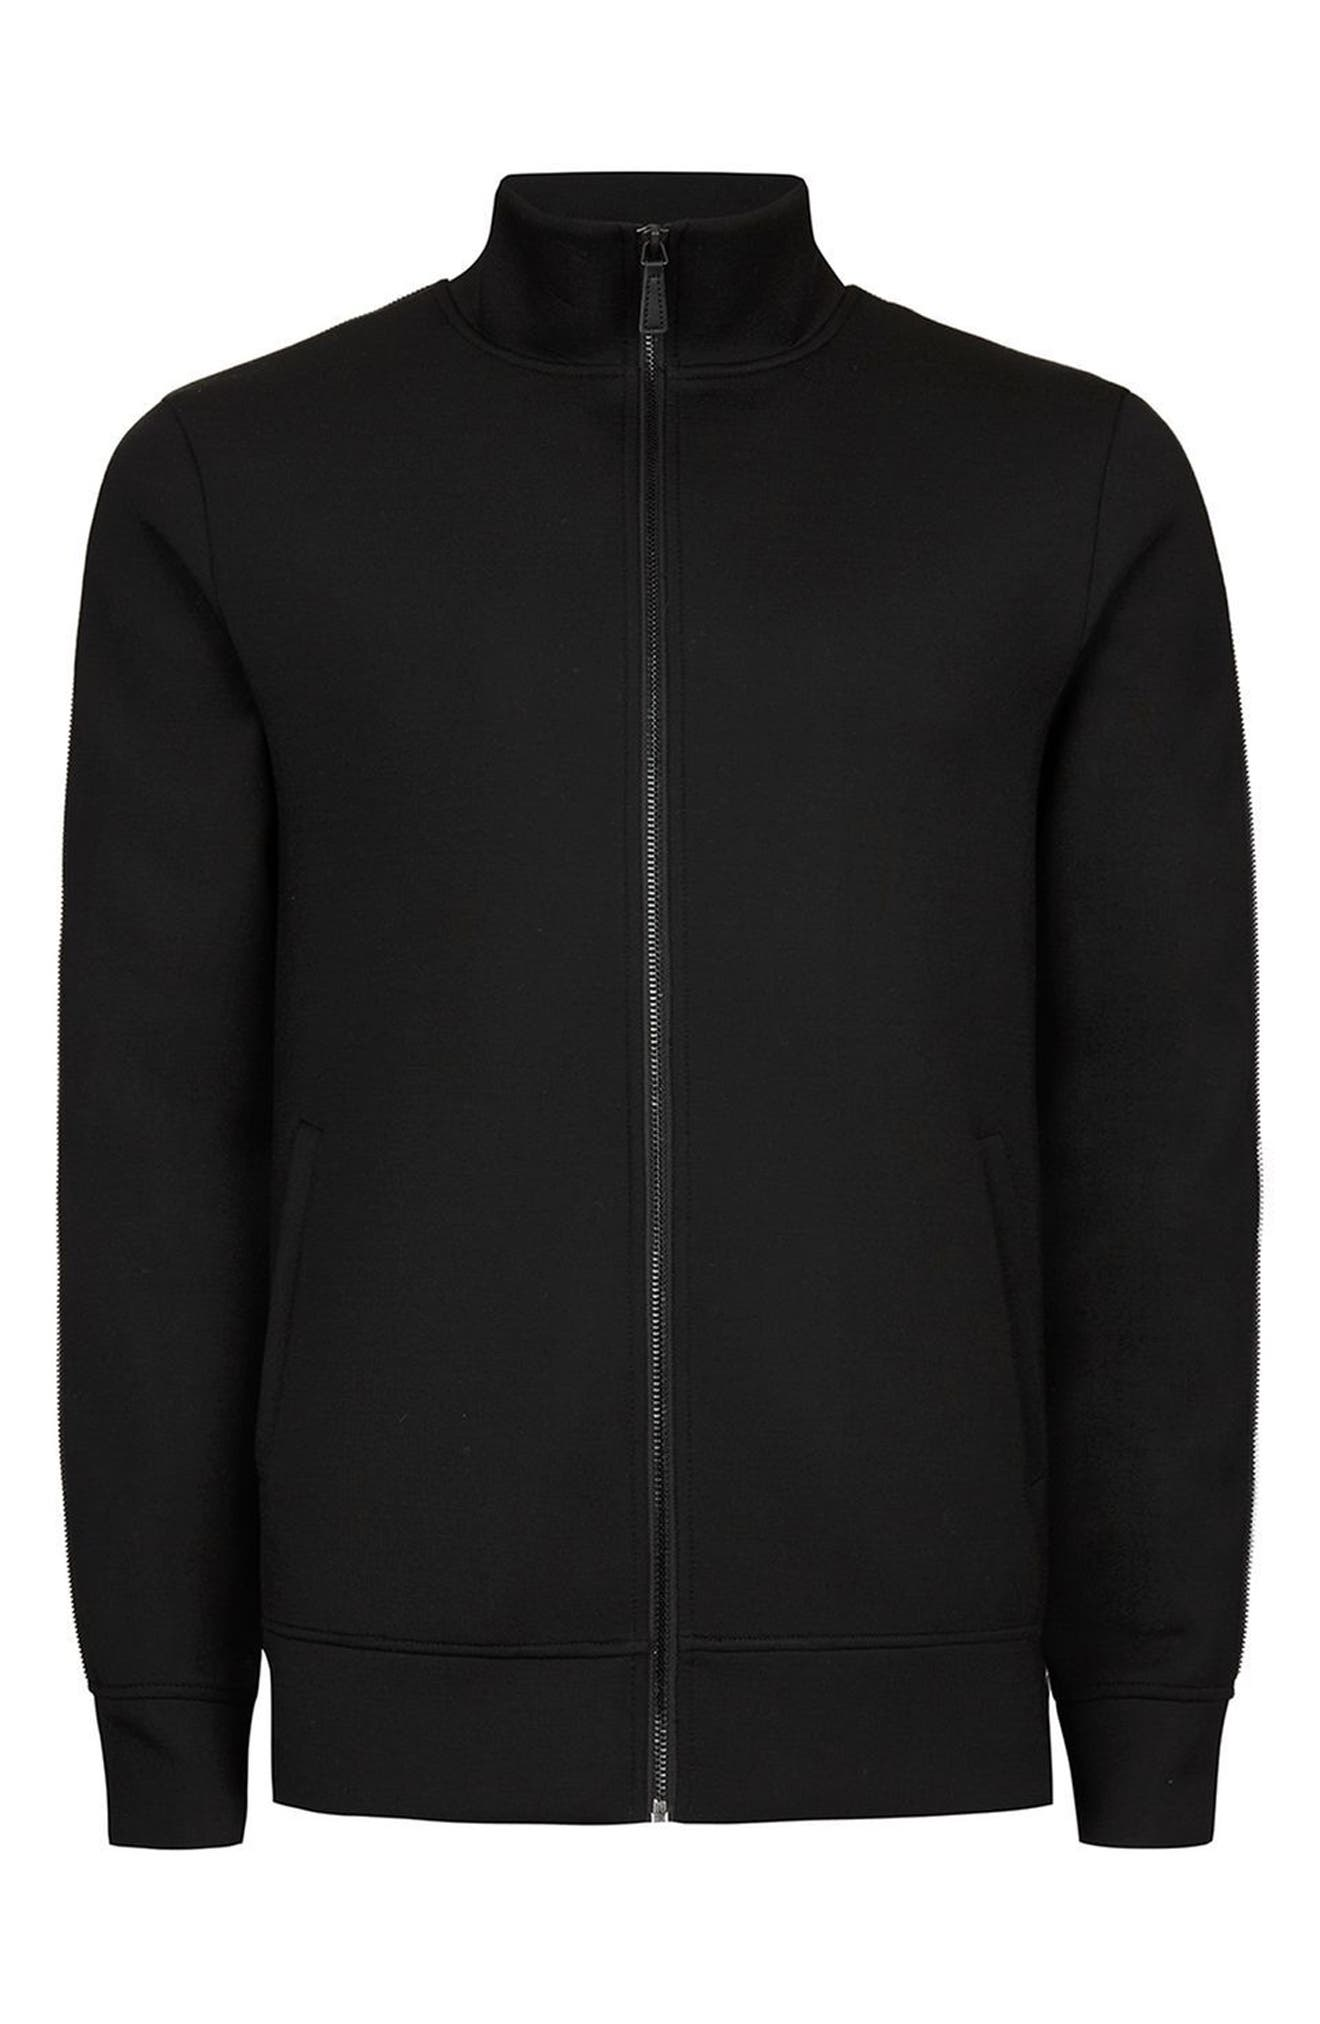 AAA Collection Zip Track Jacket,                             Alternate thumbnail 4, color,                             001